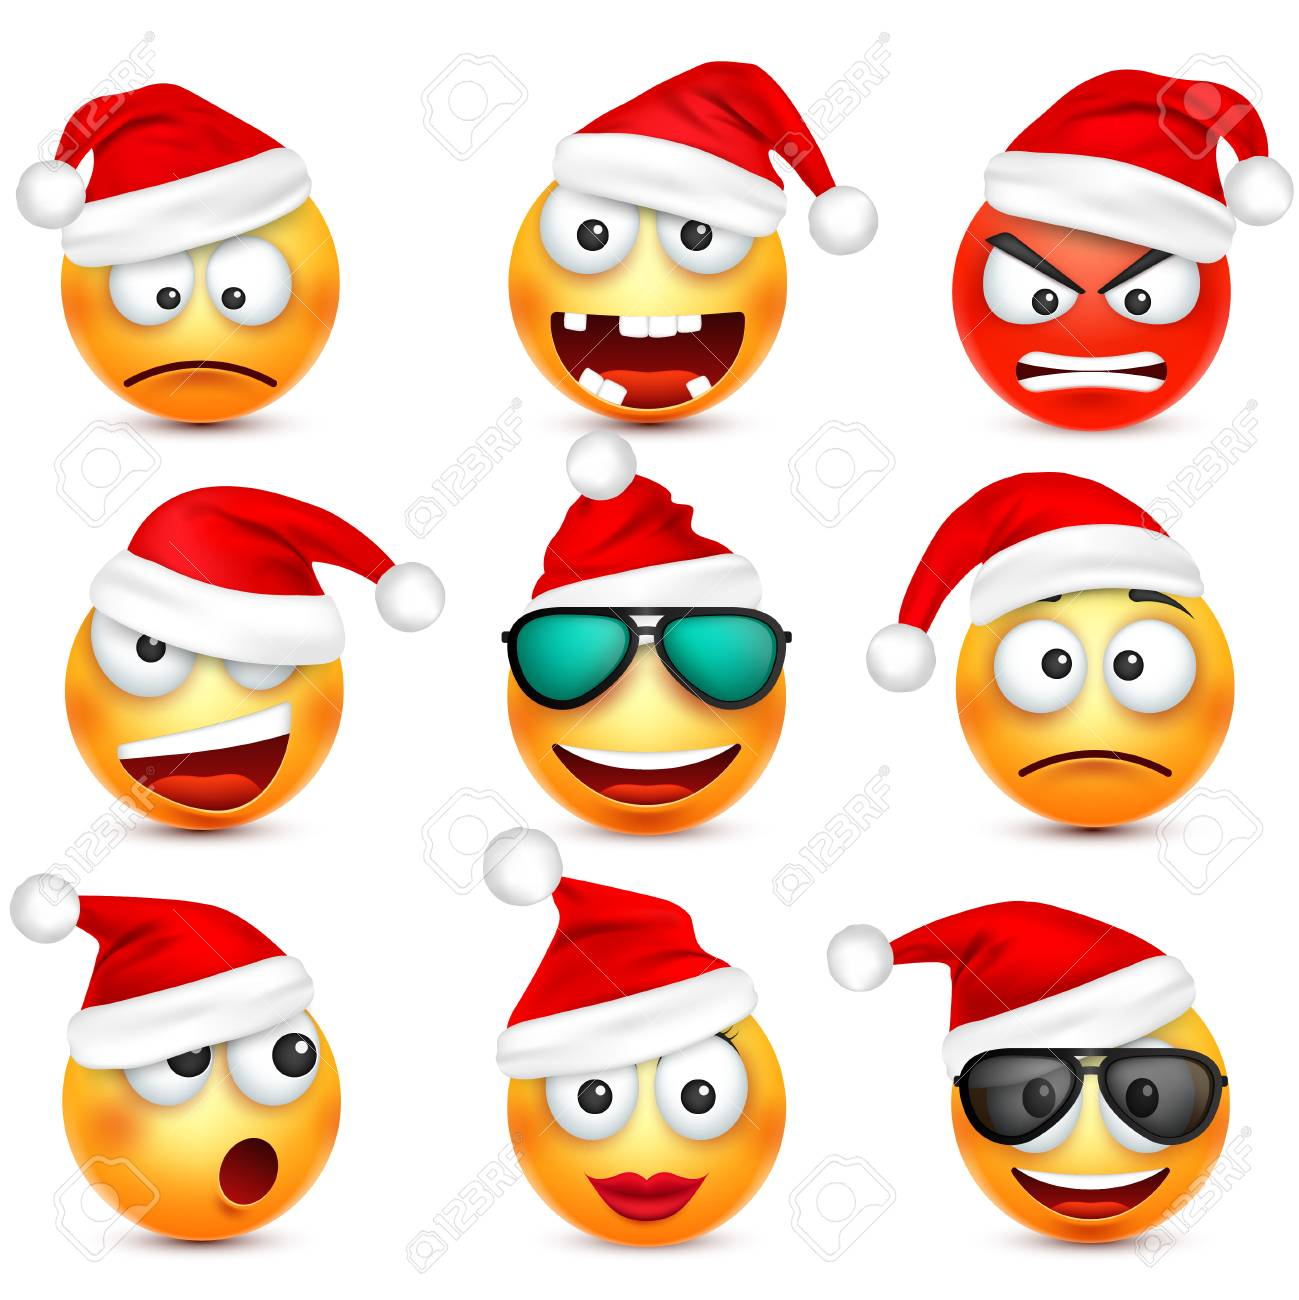 Smiley emoticon set  Yellow face with emotions and Christmas